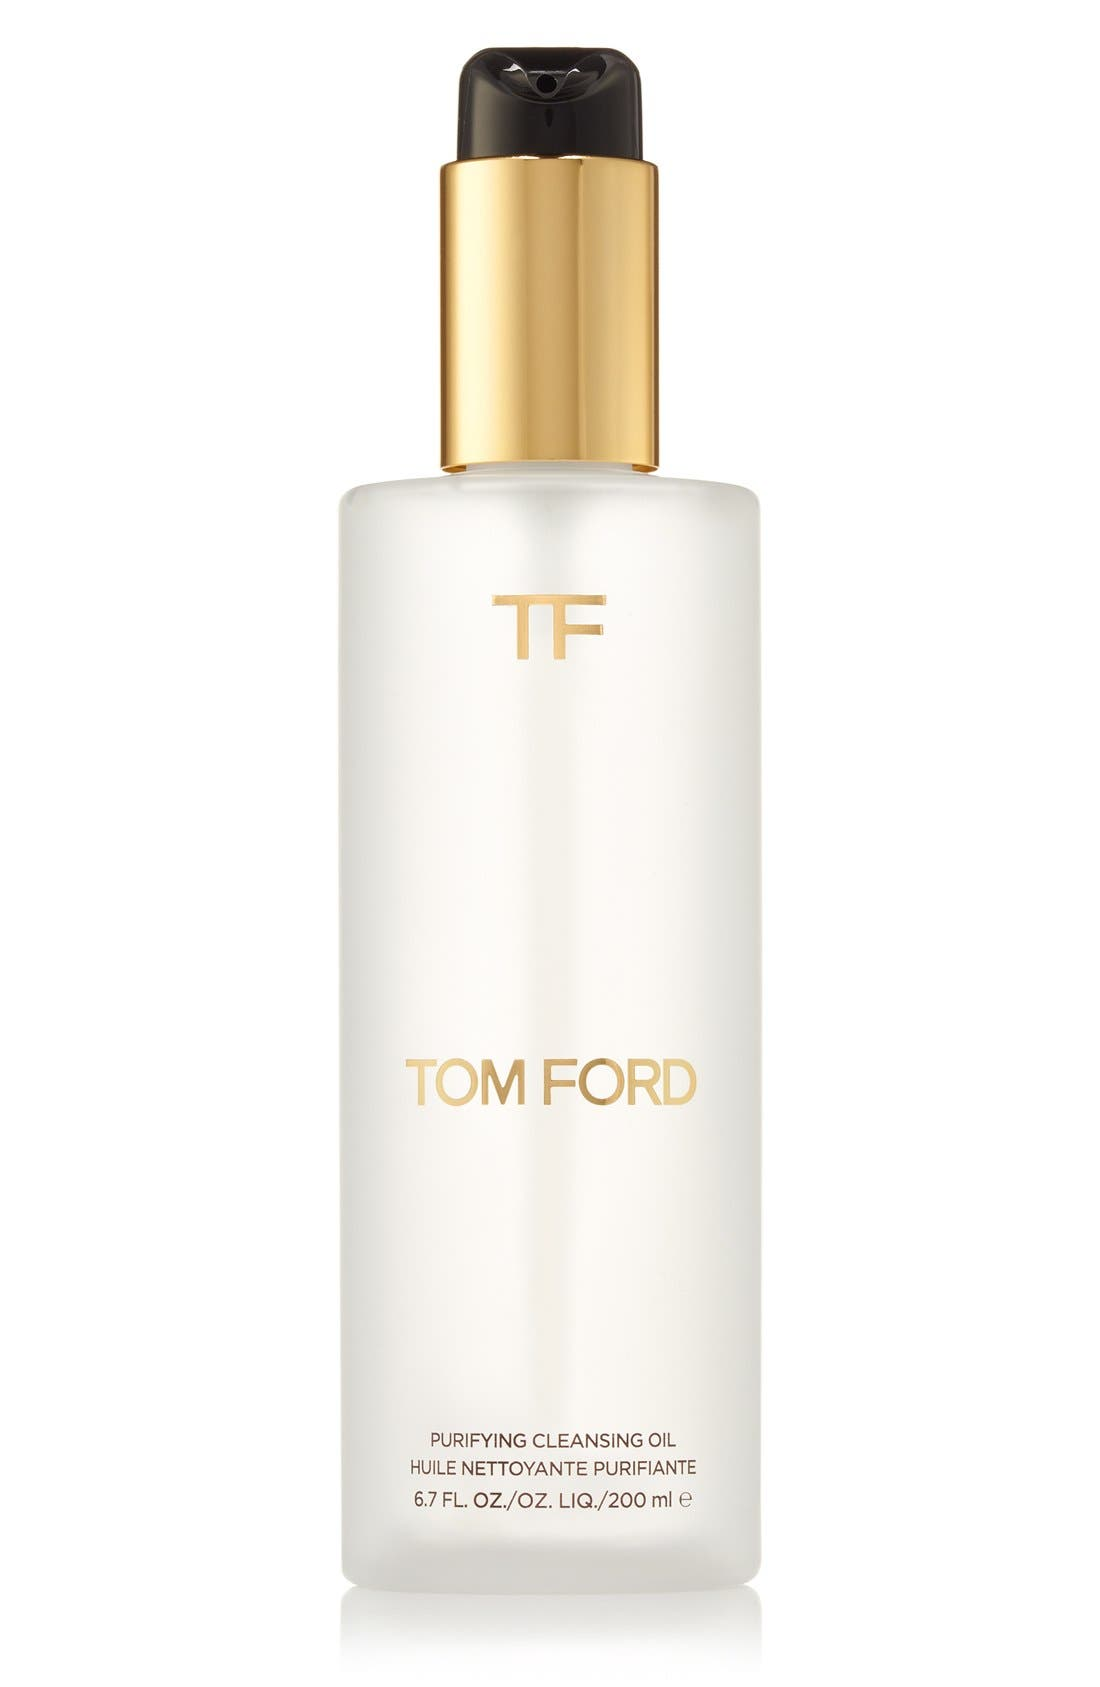 Tom Ford 'Purifying' Cleansing Oil